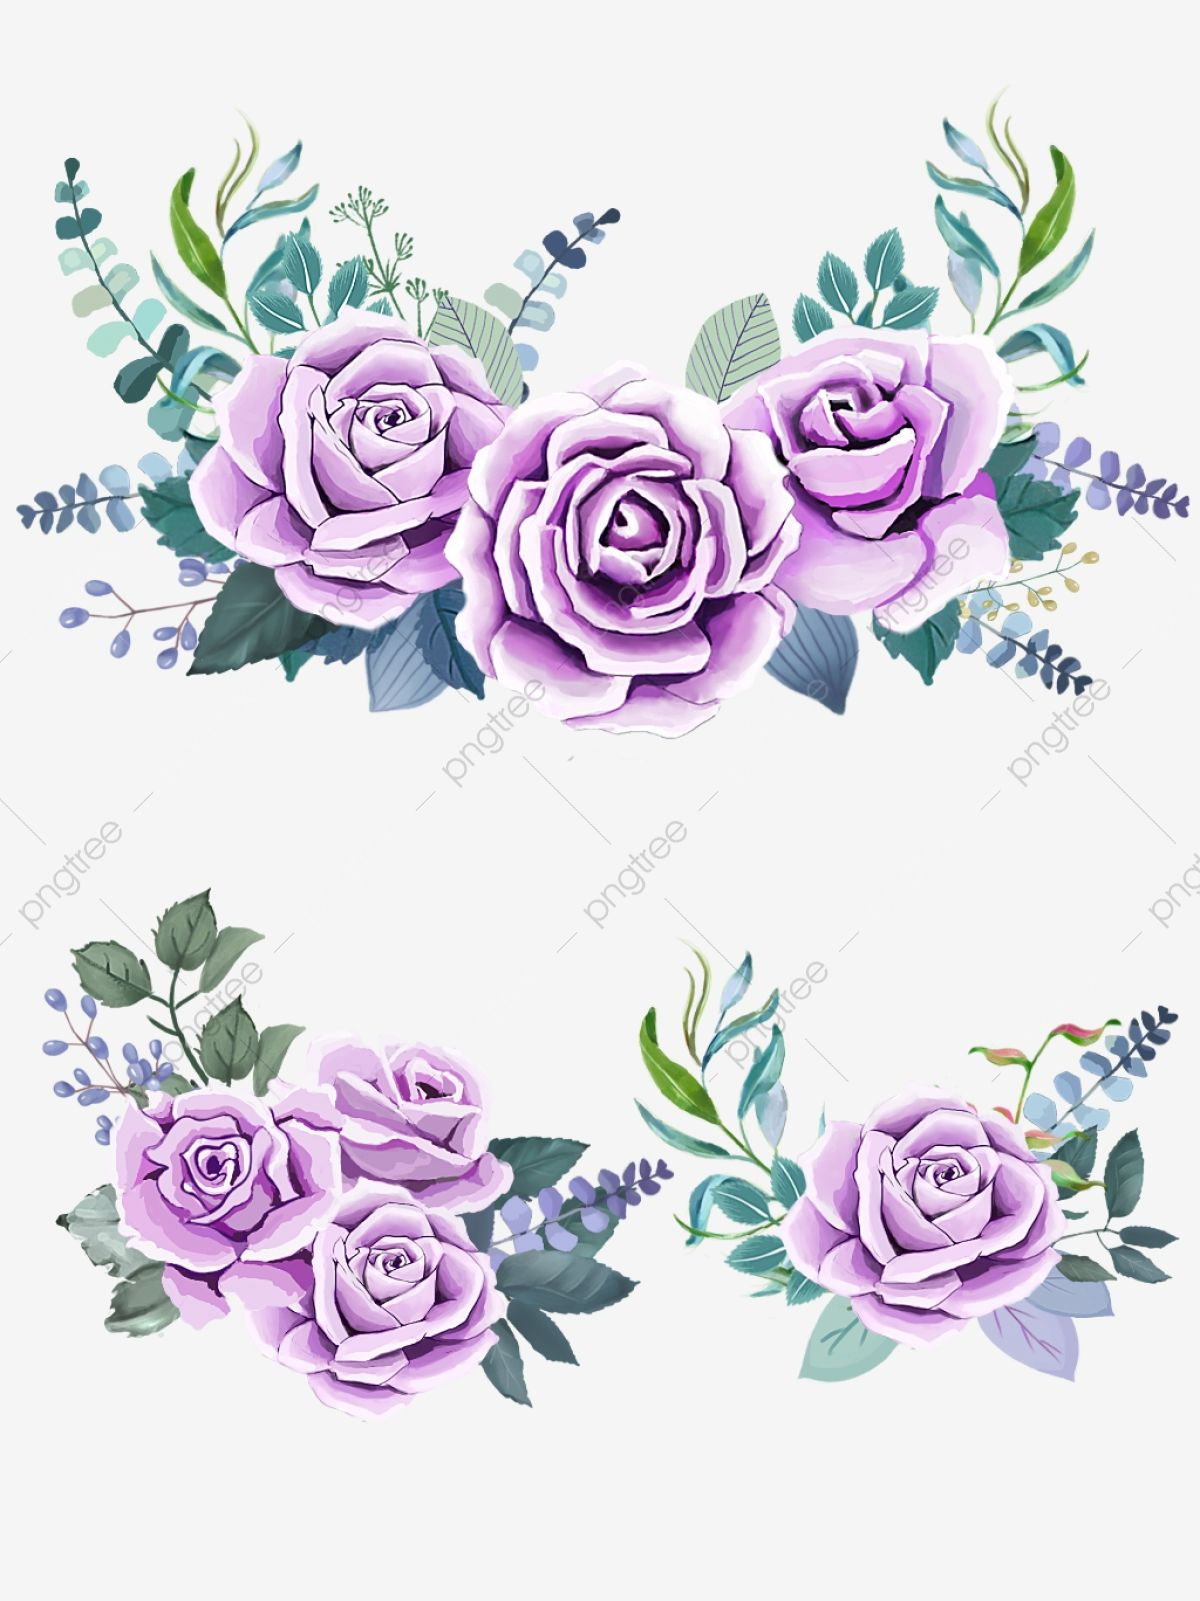 Chinese Rose Flower Purple Beautiful Free Element Roses Clipart Tanabata Purple Rose Png Transparent Image And Clipart For Free Download Free Flower Clipart Flower Clipart Purple Roses